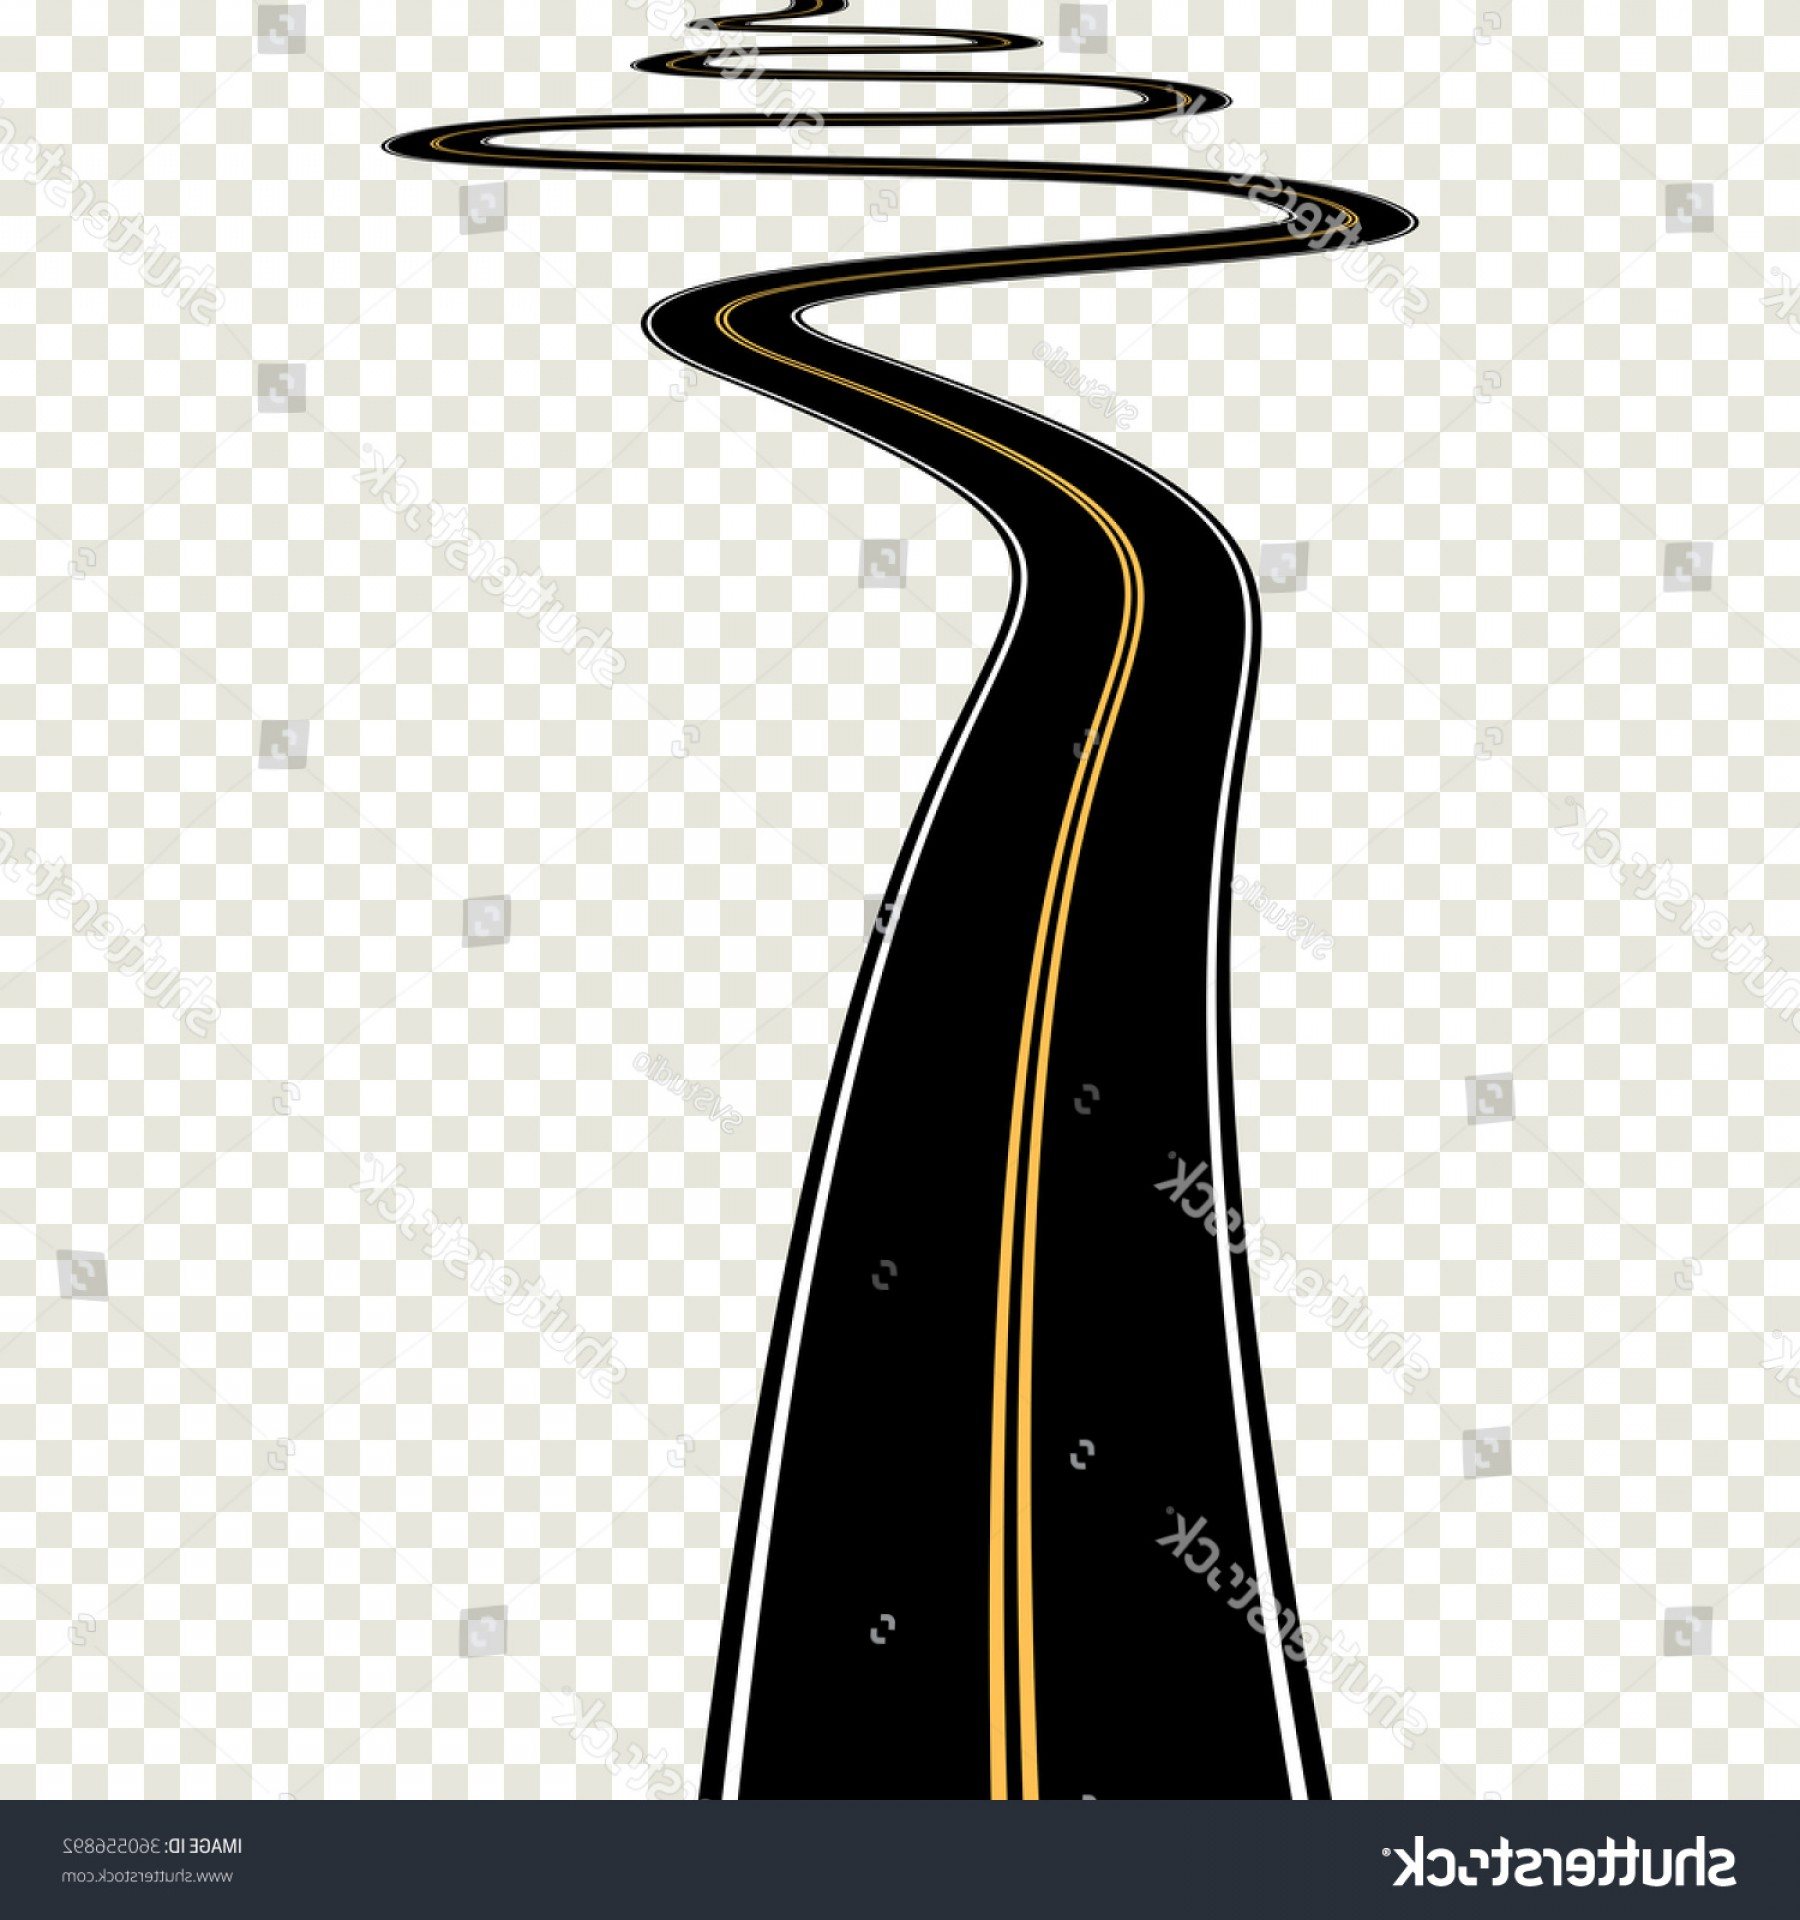 Transparent Curved Road Vector: Abstract Asphalt Curved Road Map Isolated